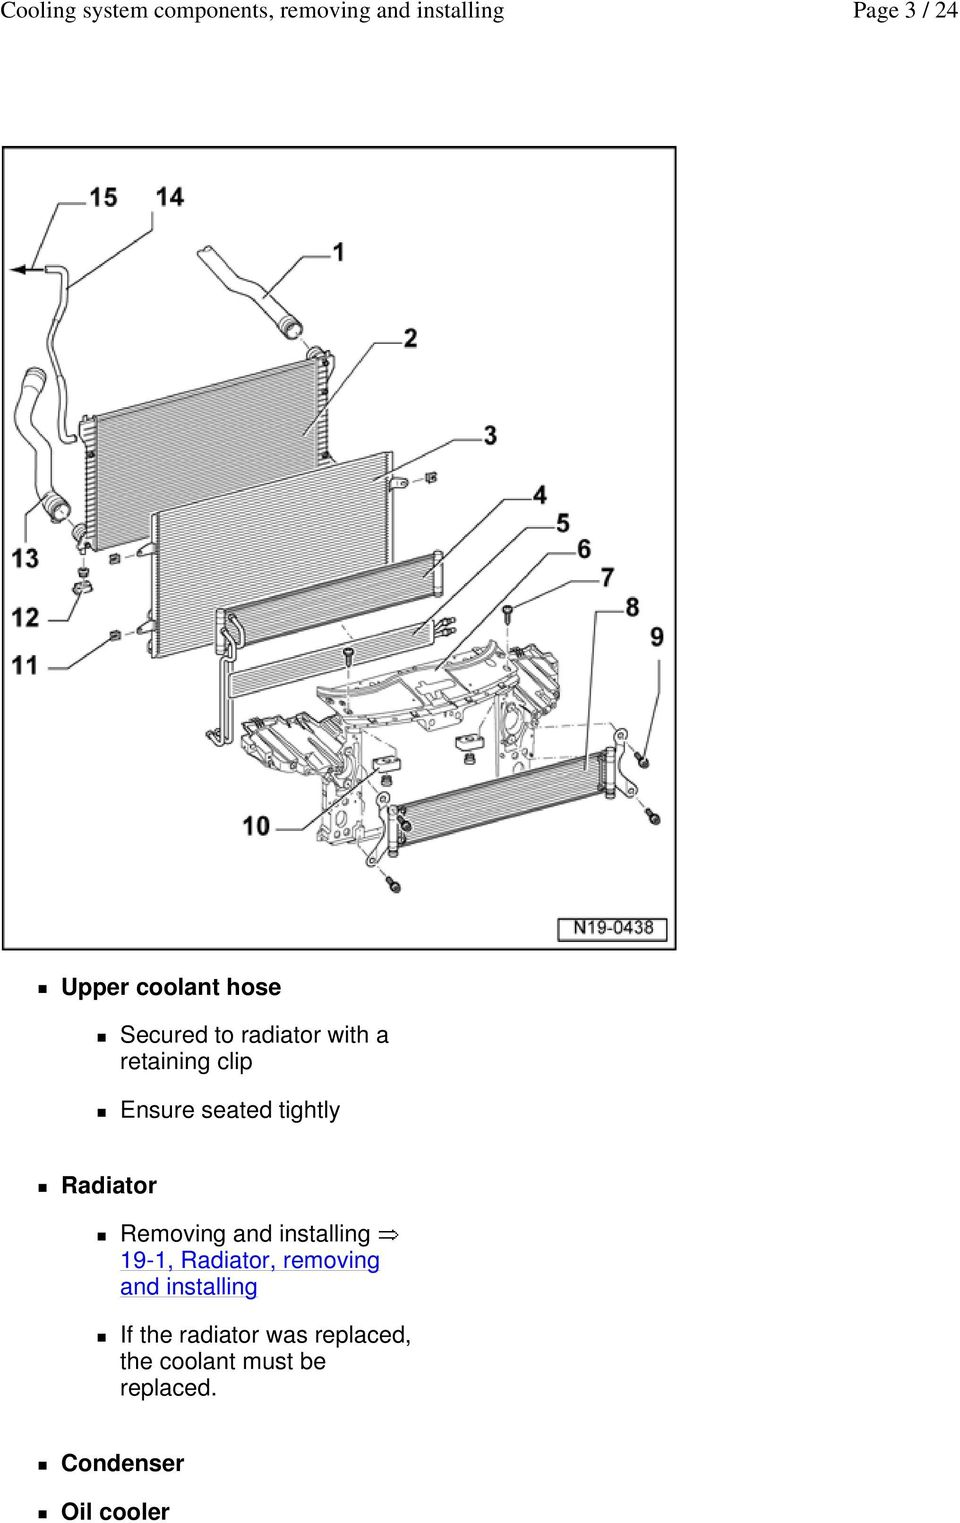 hight resolution of installing 19 1 radiator removing and installing if the